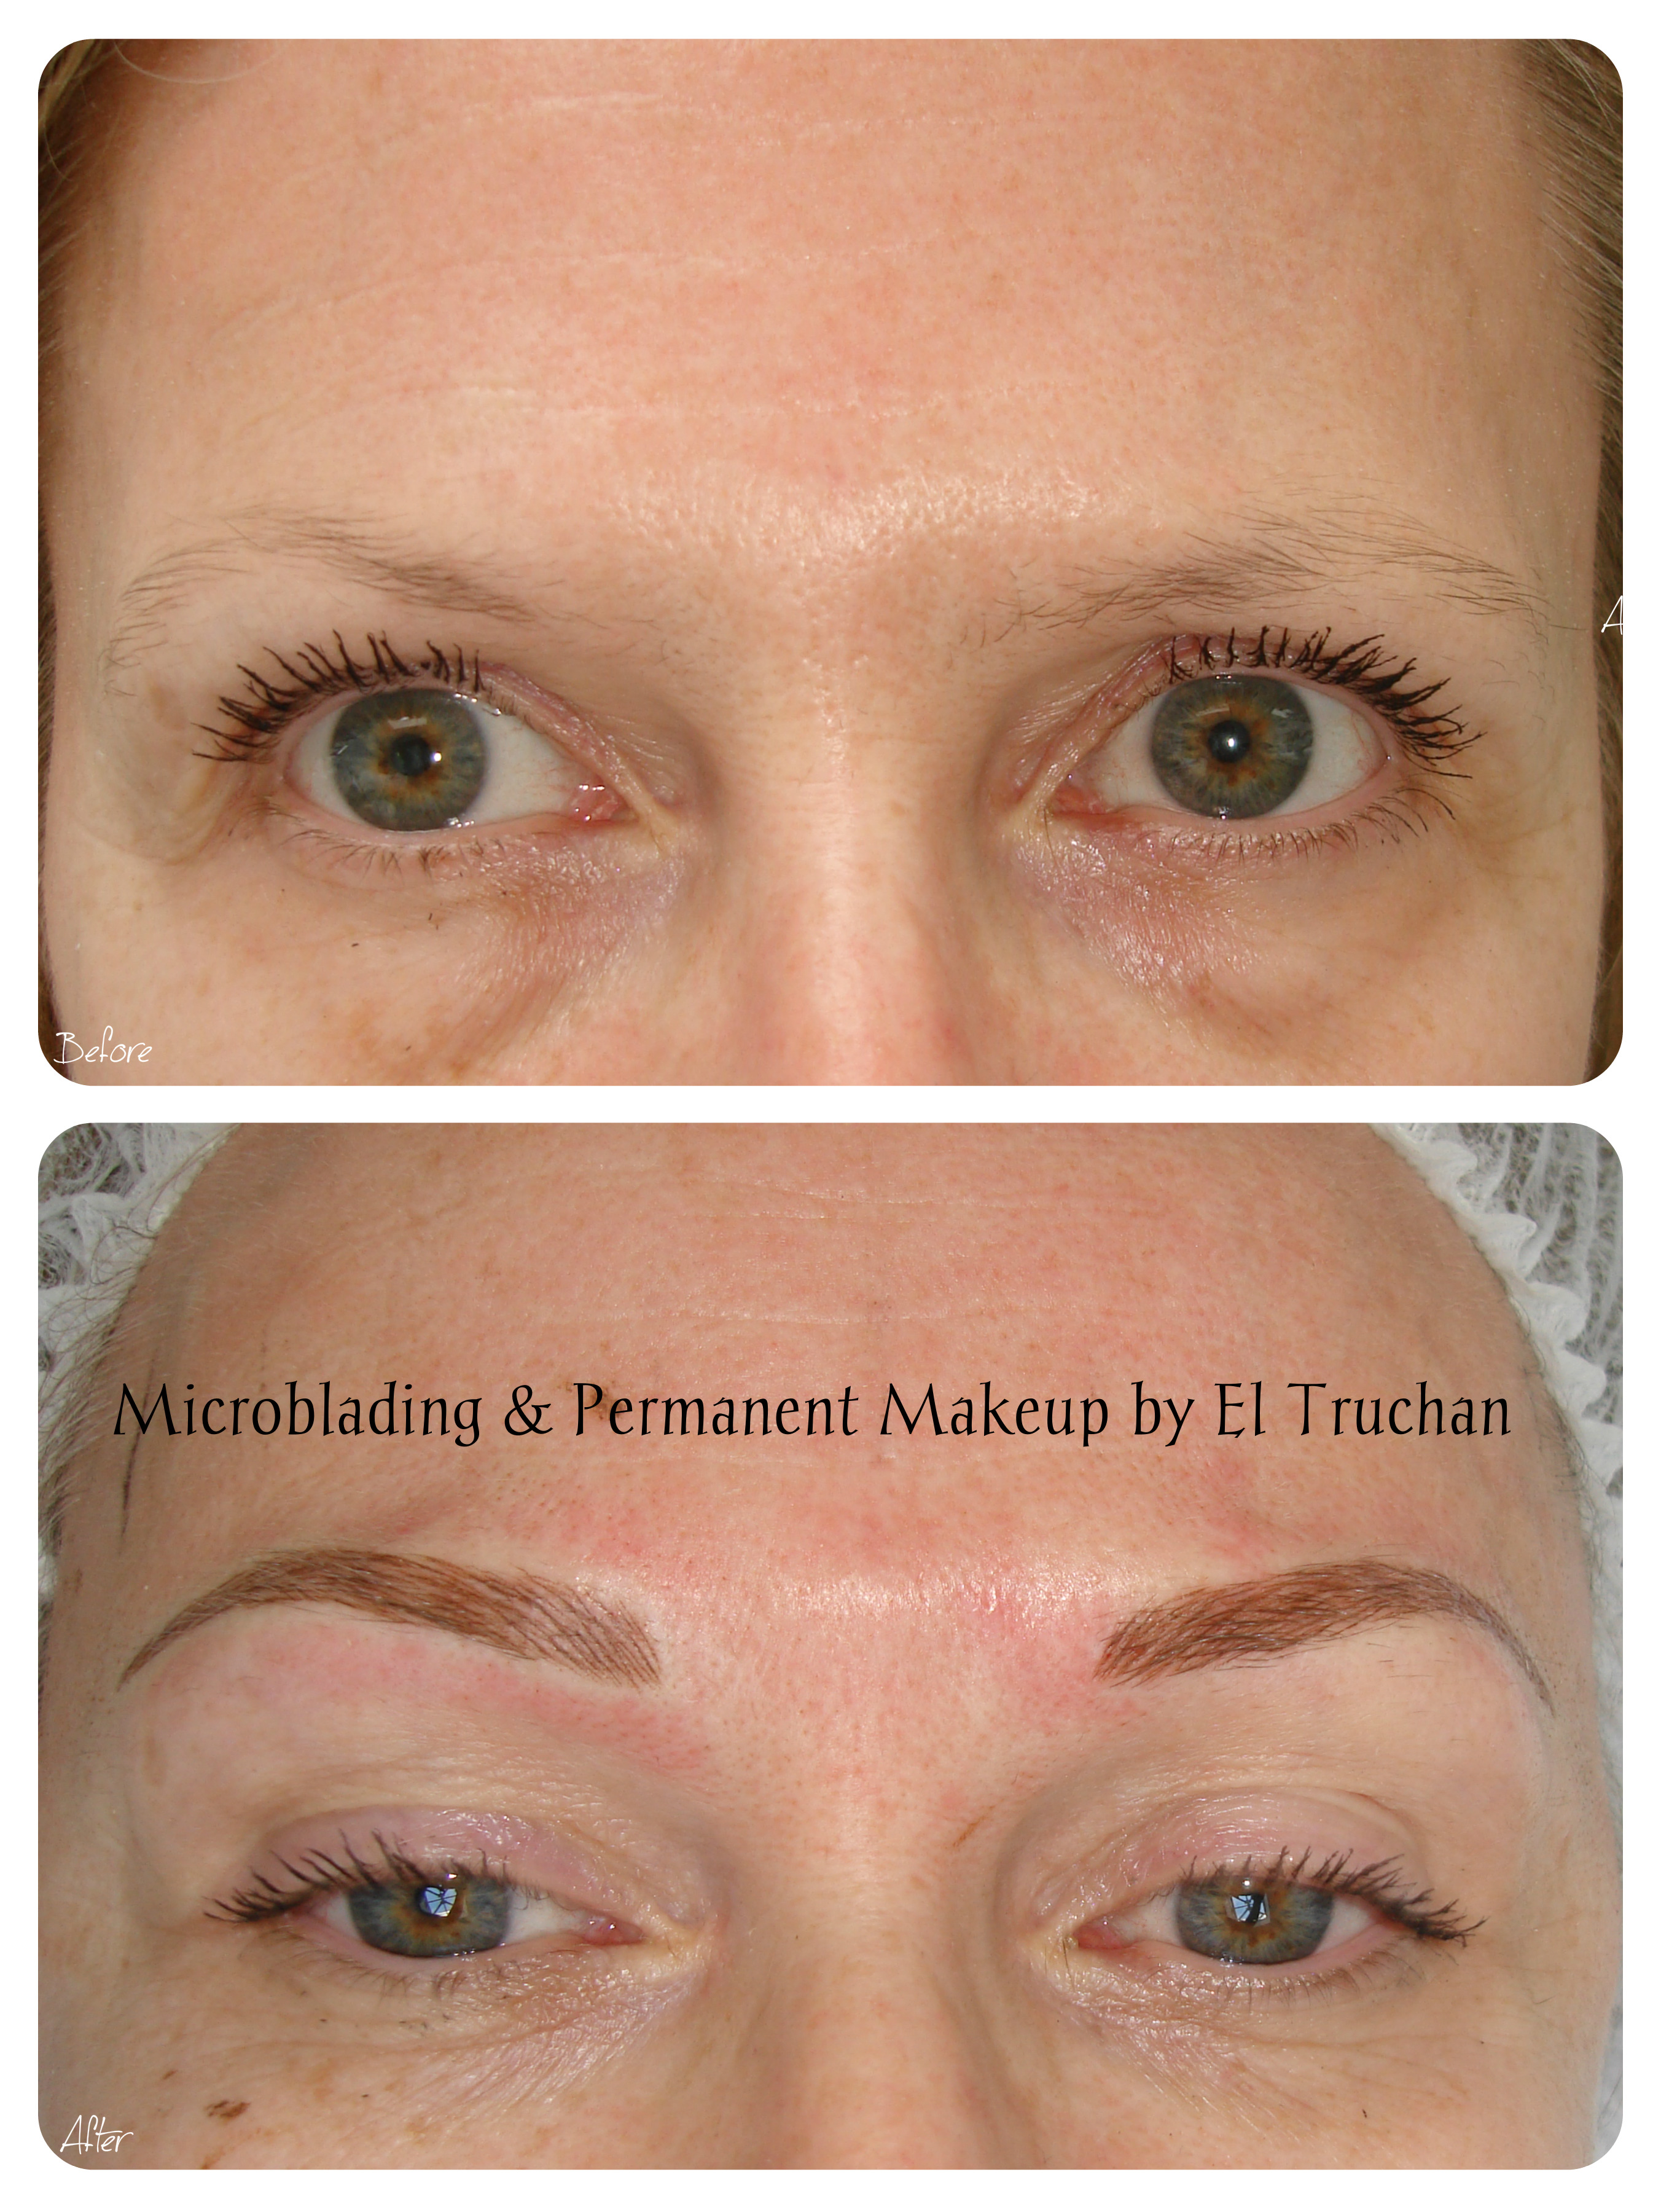 PMU & Microblading Eyebrows by El Truchan